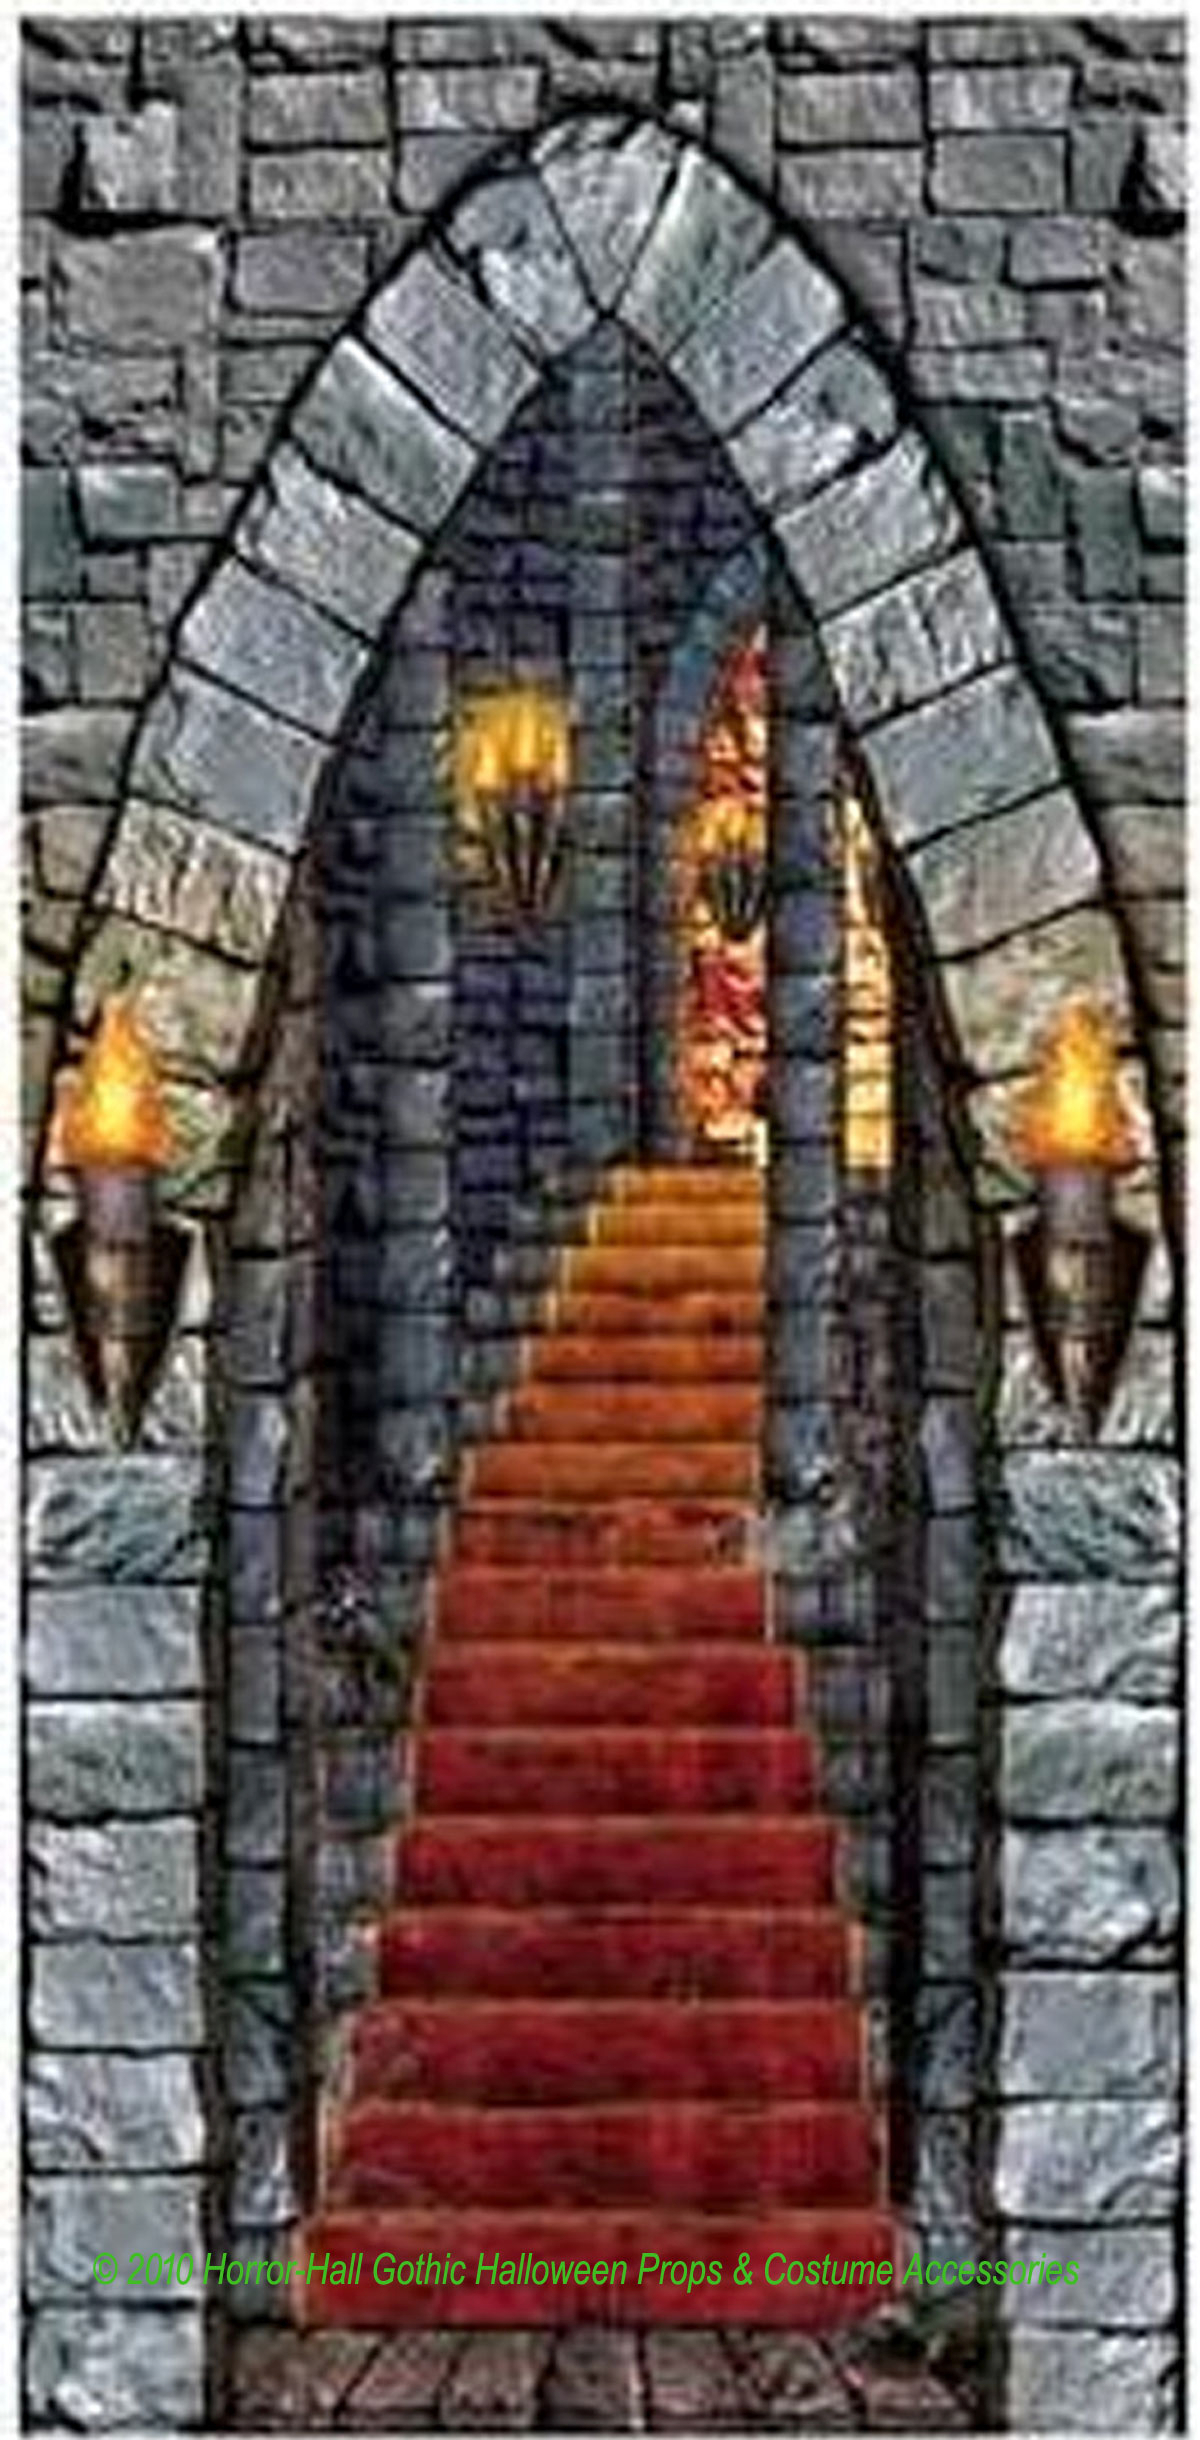 Gothic skeletons door cover wall mural scene setters decorations gothic window wall decor castle entrance door cover spooky medieval halloween decoration vampire lair king queen amipublicfo Image collections